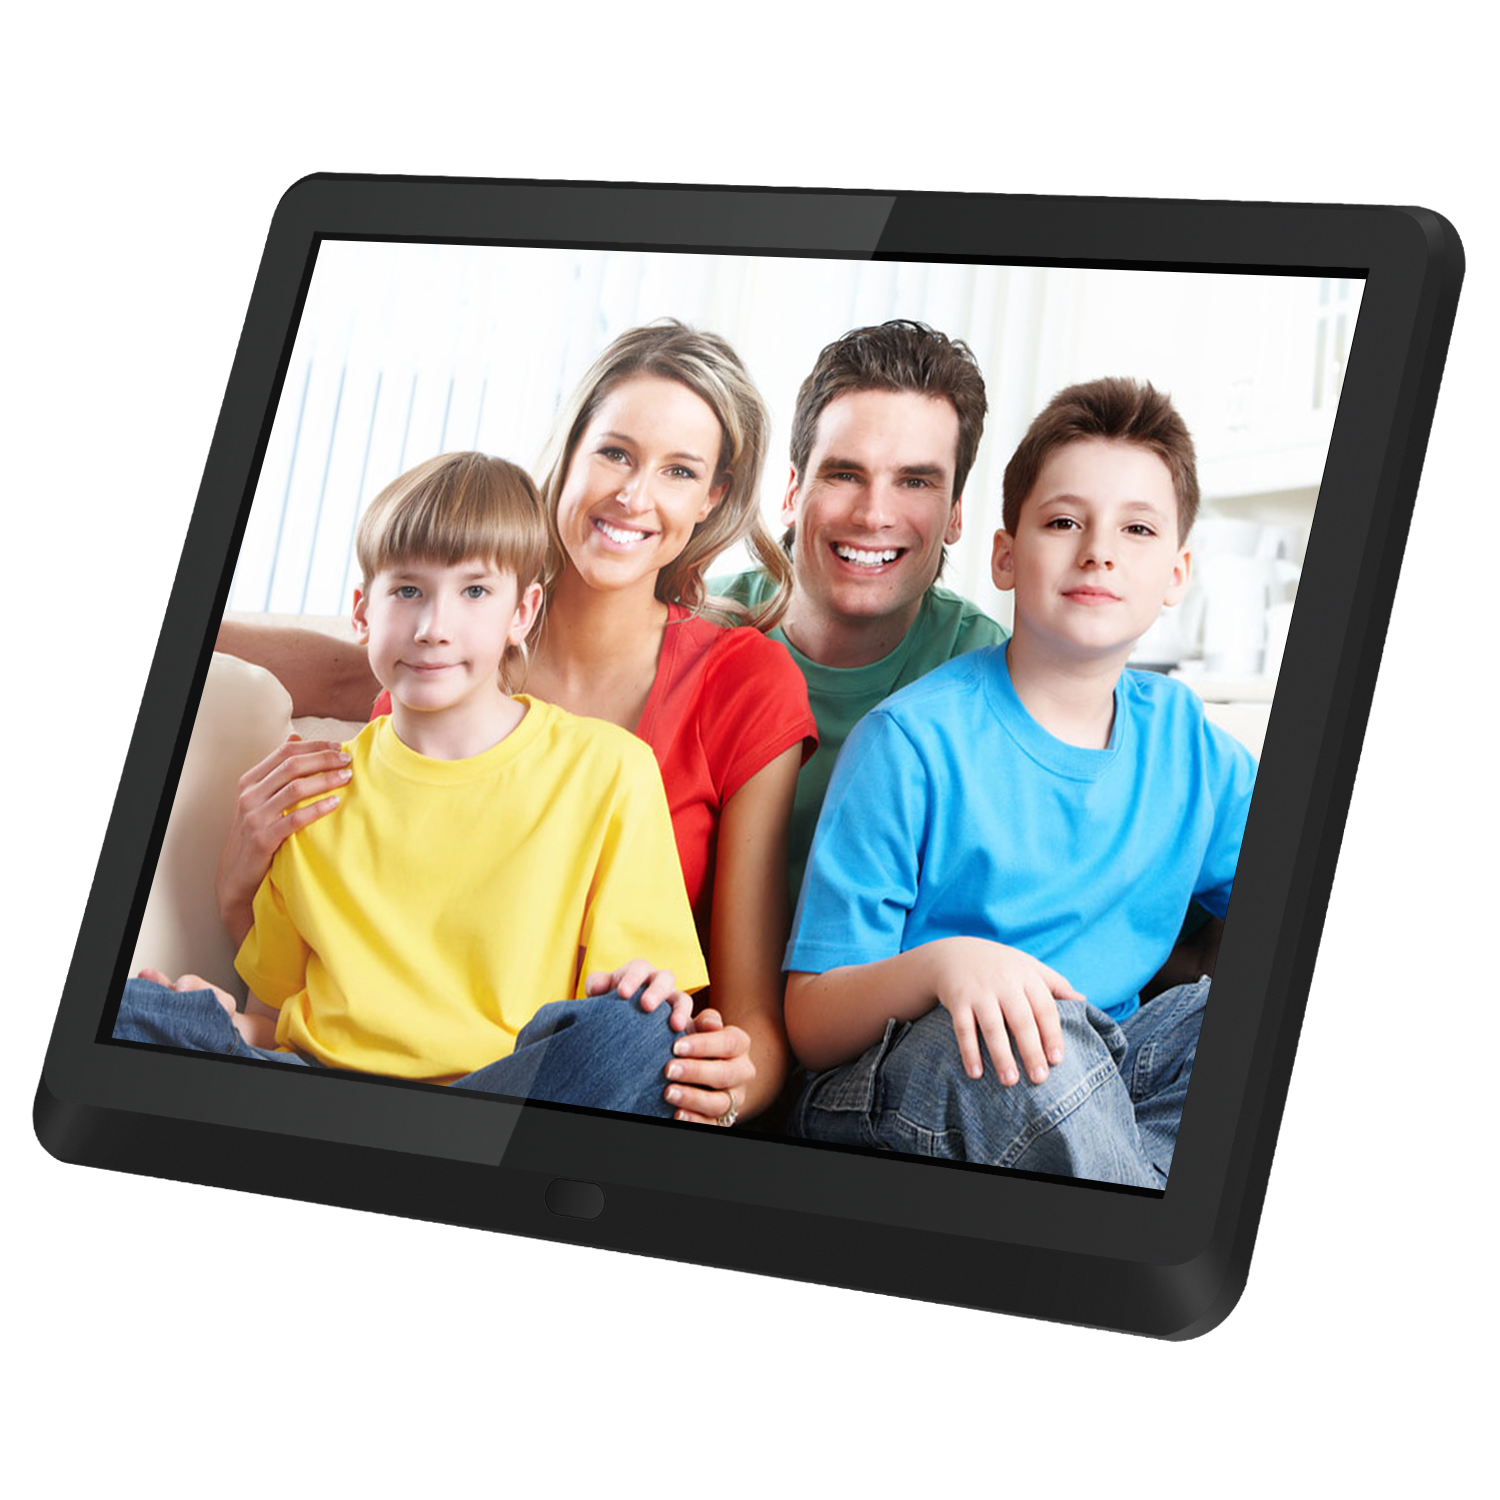 digital photo frames 10 inch 1280*800 HD IPS screen 16:9 aspect ratio <strong>P100</strong>